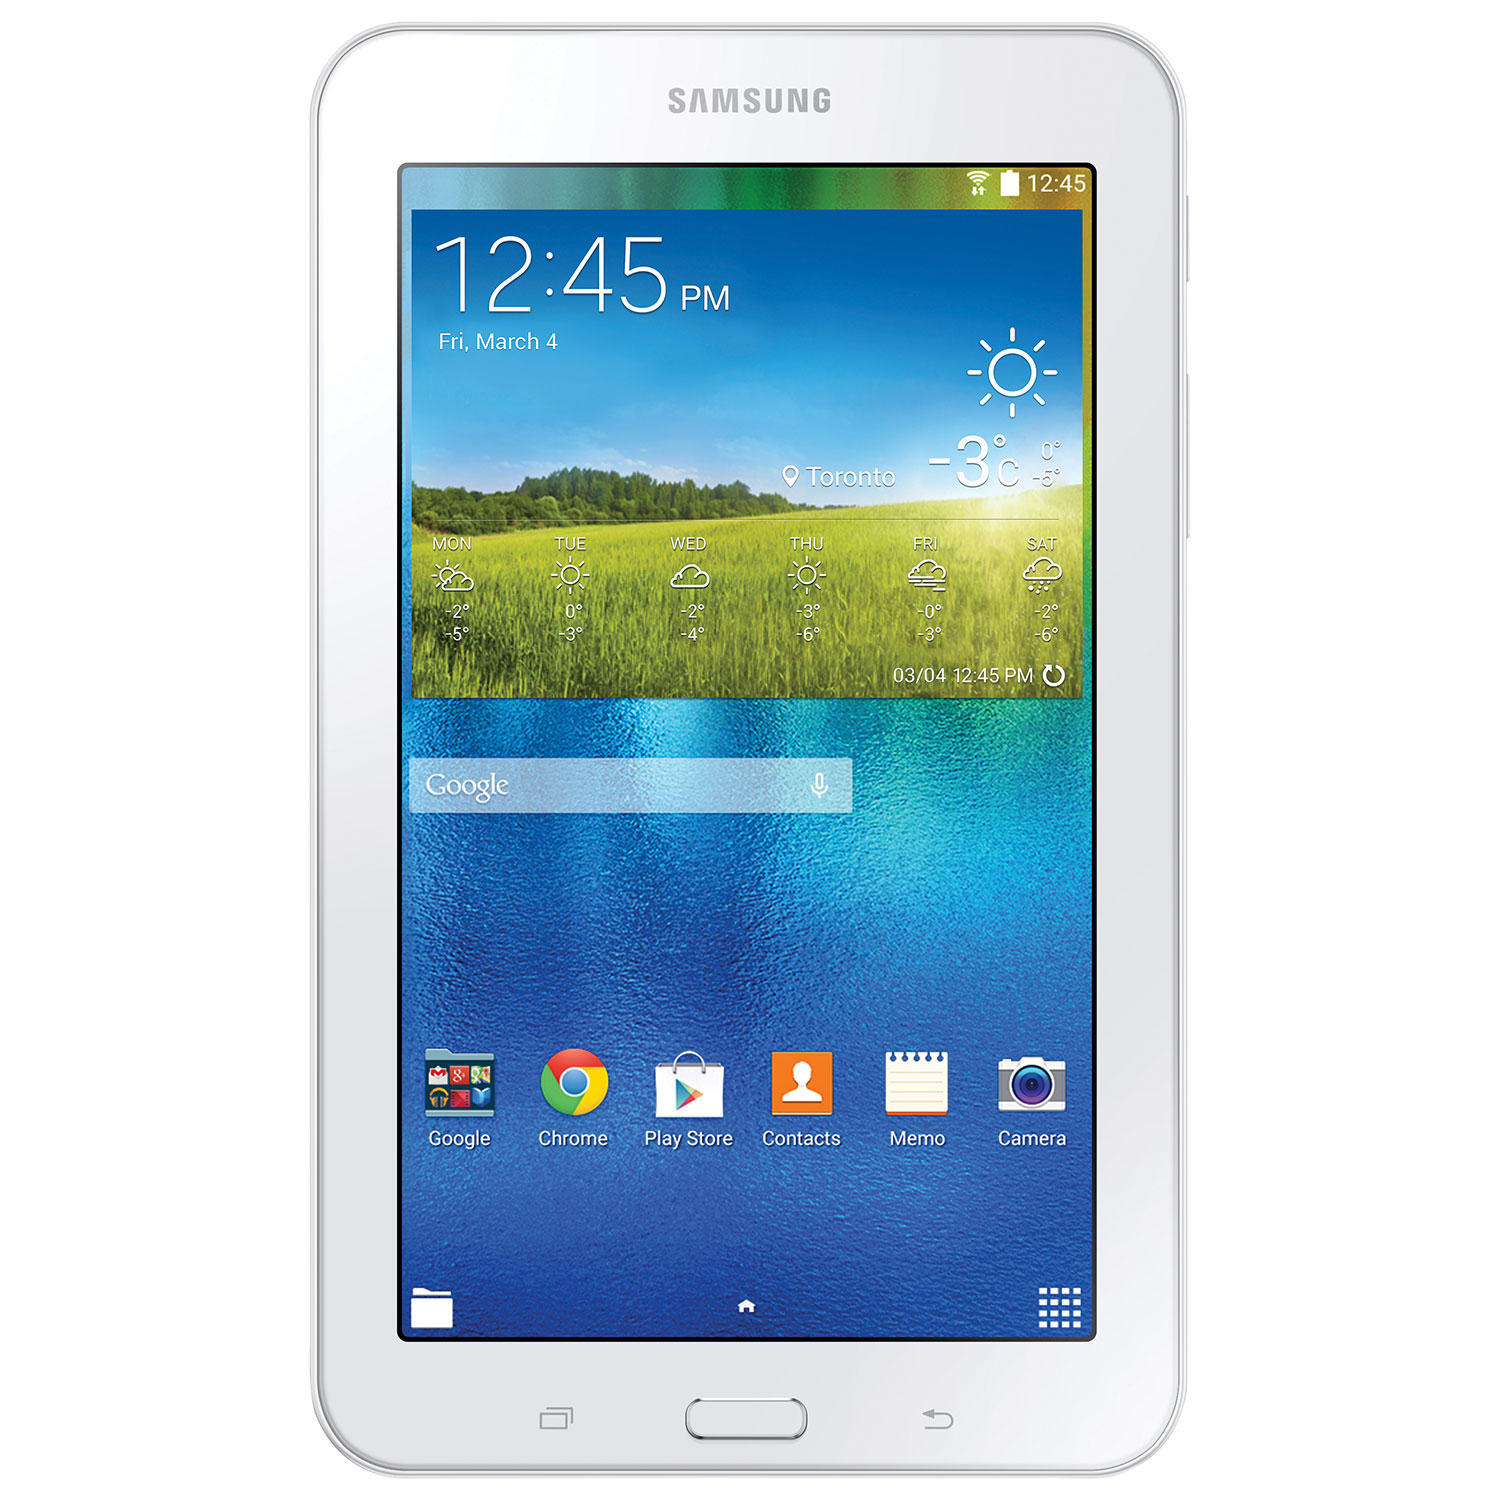 samsung galaxy tab lite android tablet with spreadtrum tablette accent fast shark quad core processor white tablets best round industrial end table extra wide door threshold bars